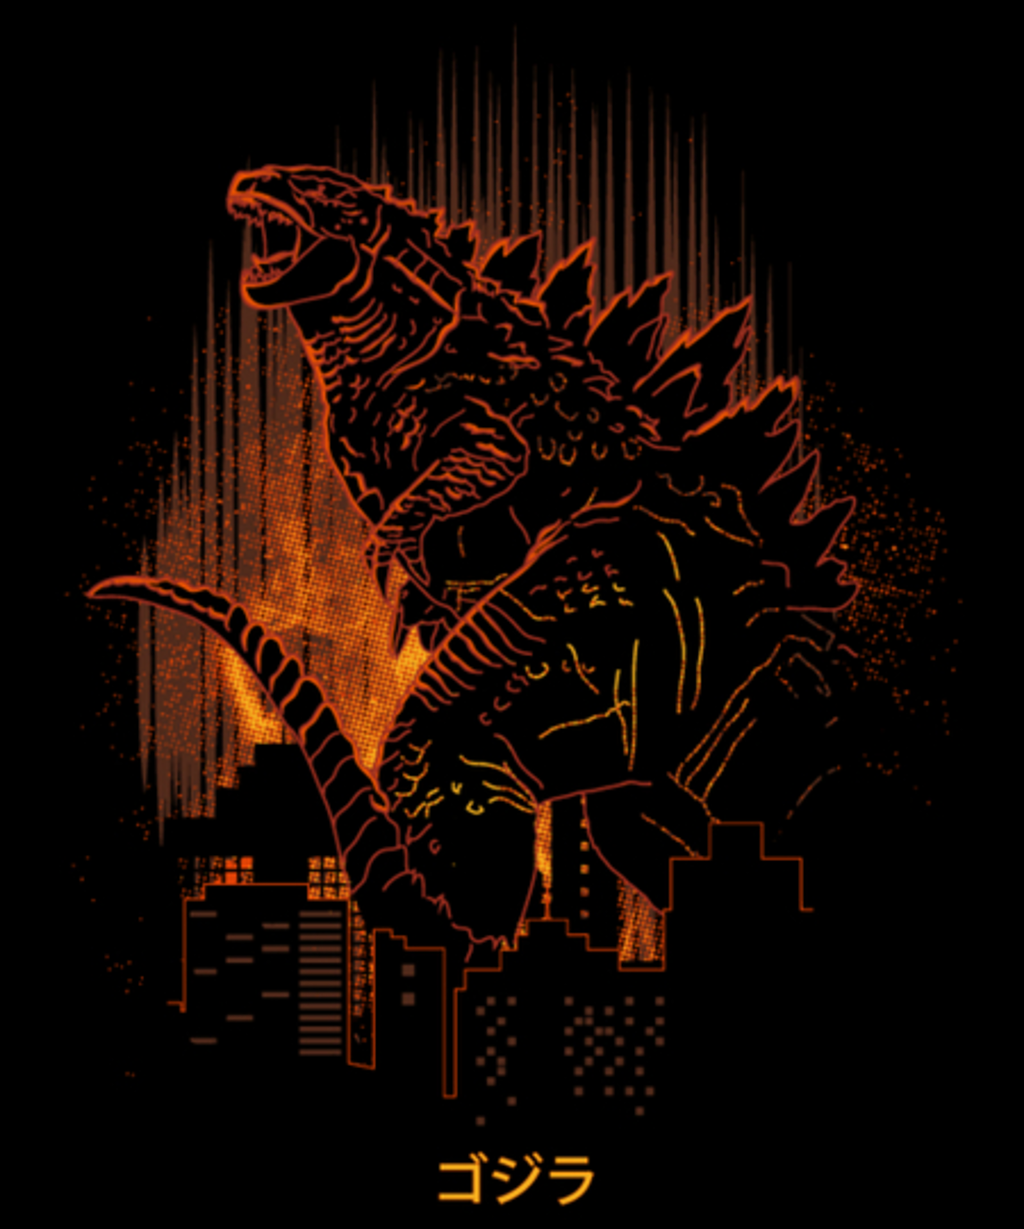 Qwertee: Shadow of Godzilla